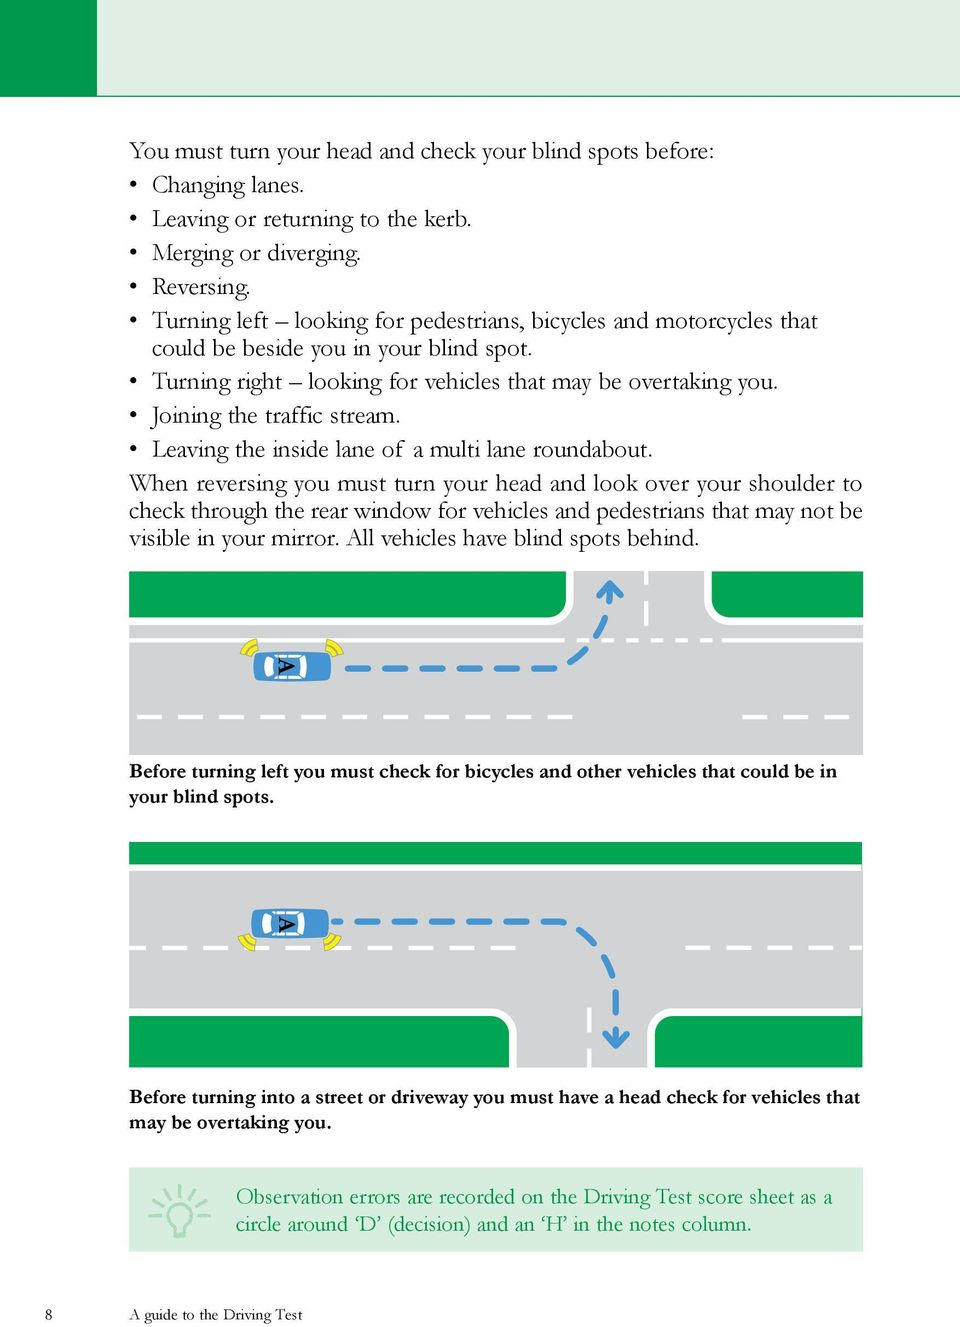 Leaving the inside lane of a multi lane roundabout.